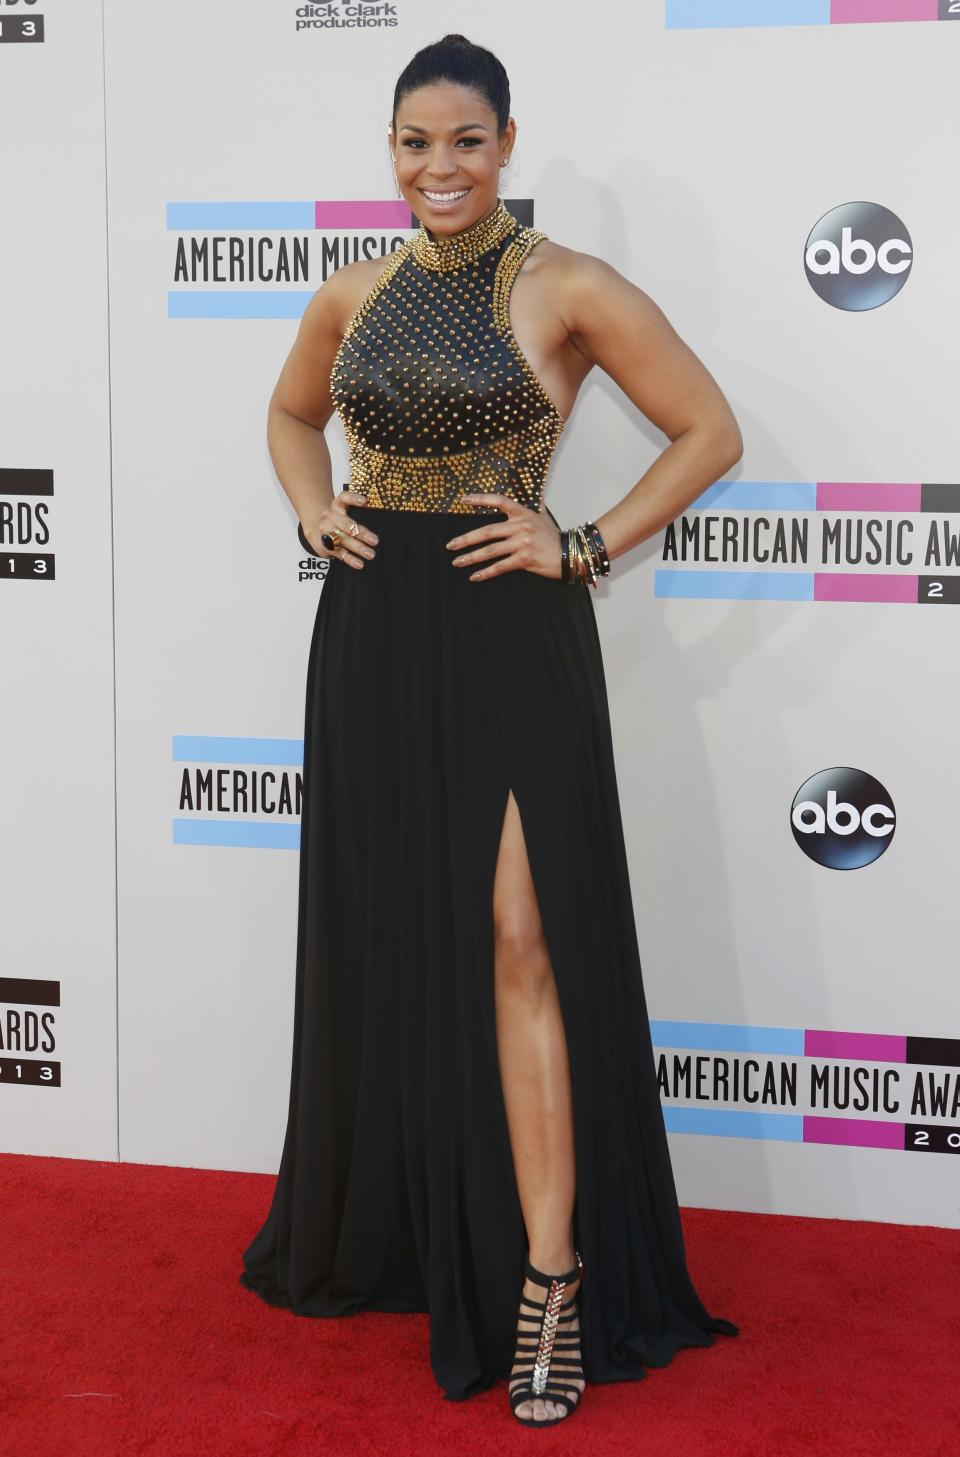 Jordin Sparks had a bit of a goddess vibe going tonight in this black dressed with flowing, split skirt and fitted, gold-studded top. The sandals complemented the look. We thought her hair could have used a bit more oomph, but overall, we approve. REUTERS/Mario Anzuoni (UNITED STATES- TAGS: ENTERTAINMENT)(AMA-ARRIVALS)